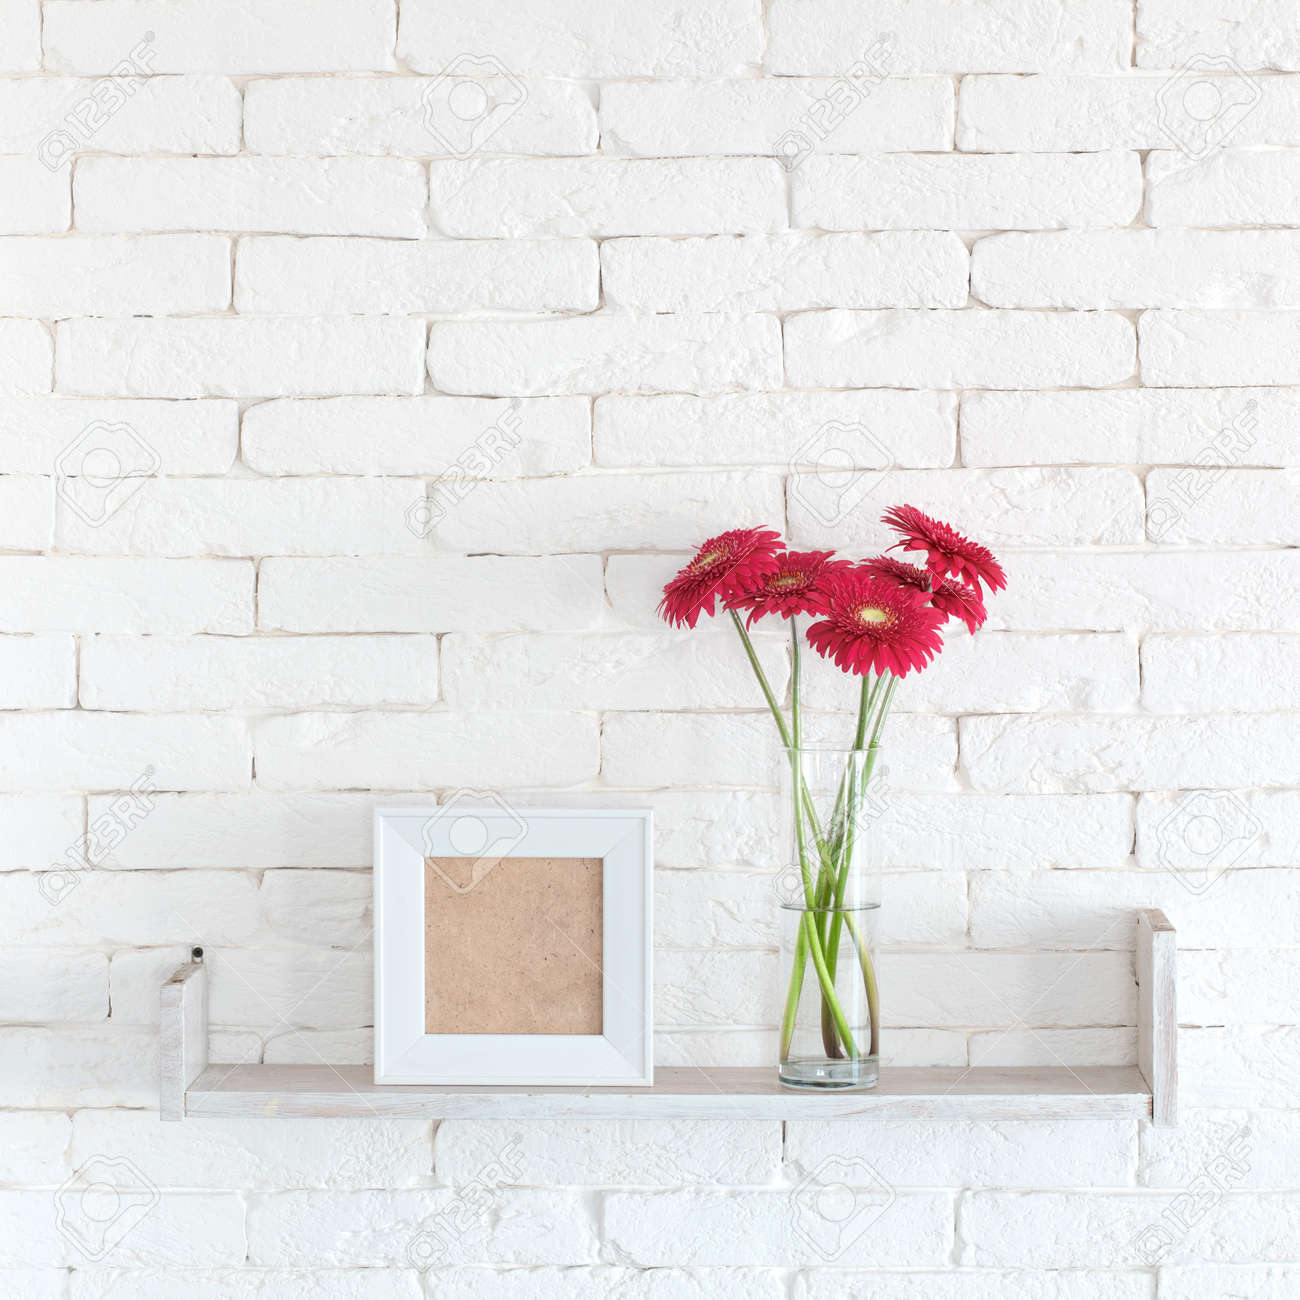 decorative shelf on white brick wall with flowers in vase on it stock photo